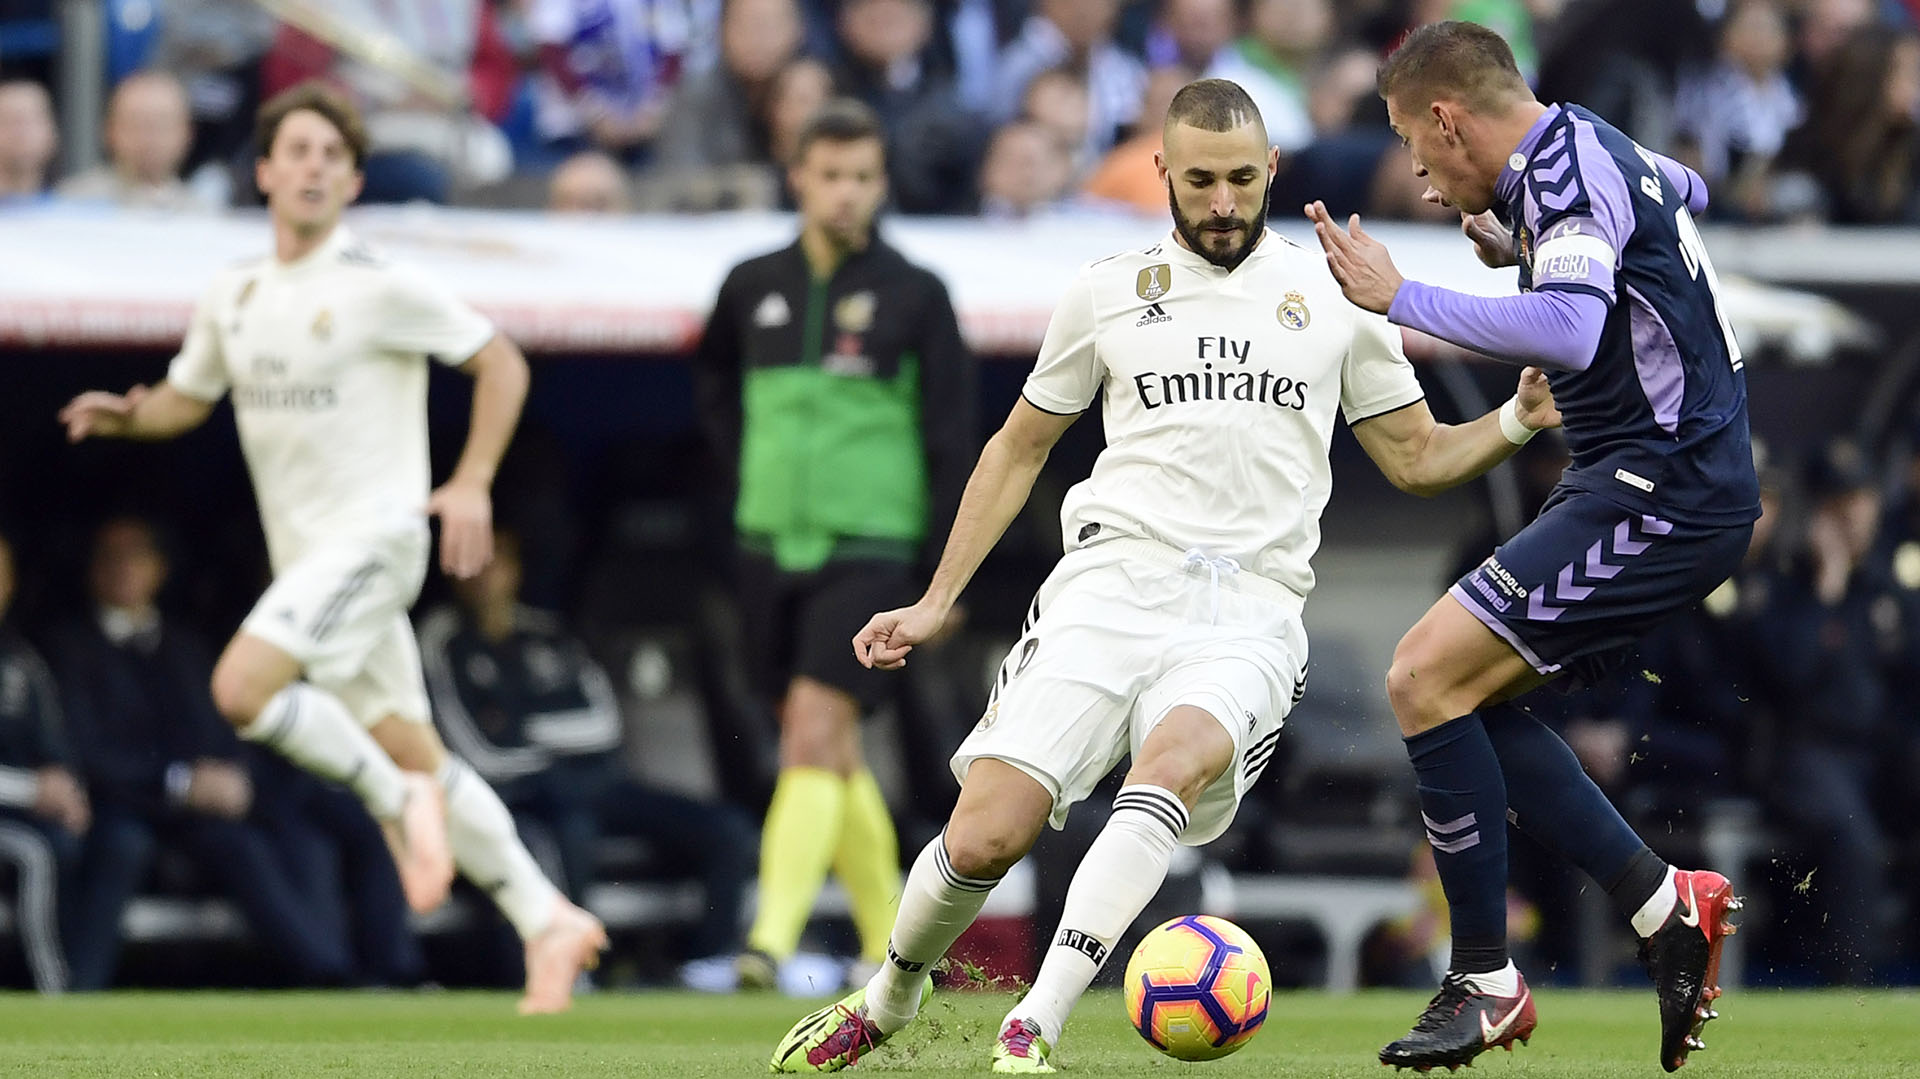 Real Madrid's French forward Karim Benzema (L) vies with Real Valladolid's Spanish midfielder Ruben Alcaraz during the Spanish league football match between Real Madrid CF and Real Valladolid FC at the Santiago Bernabeu stadium in Madrid on November 3, 2018. (Photo by JAVIER SORIANO / AFP)